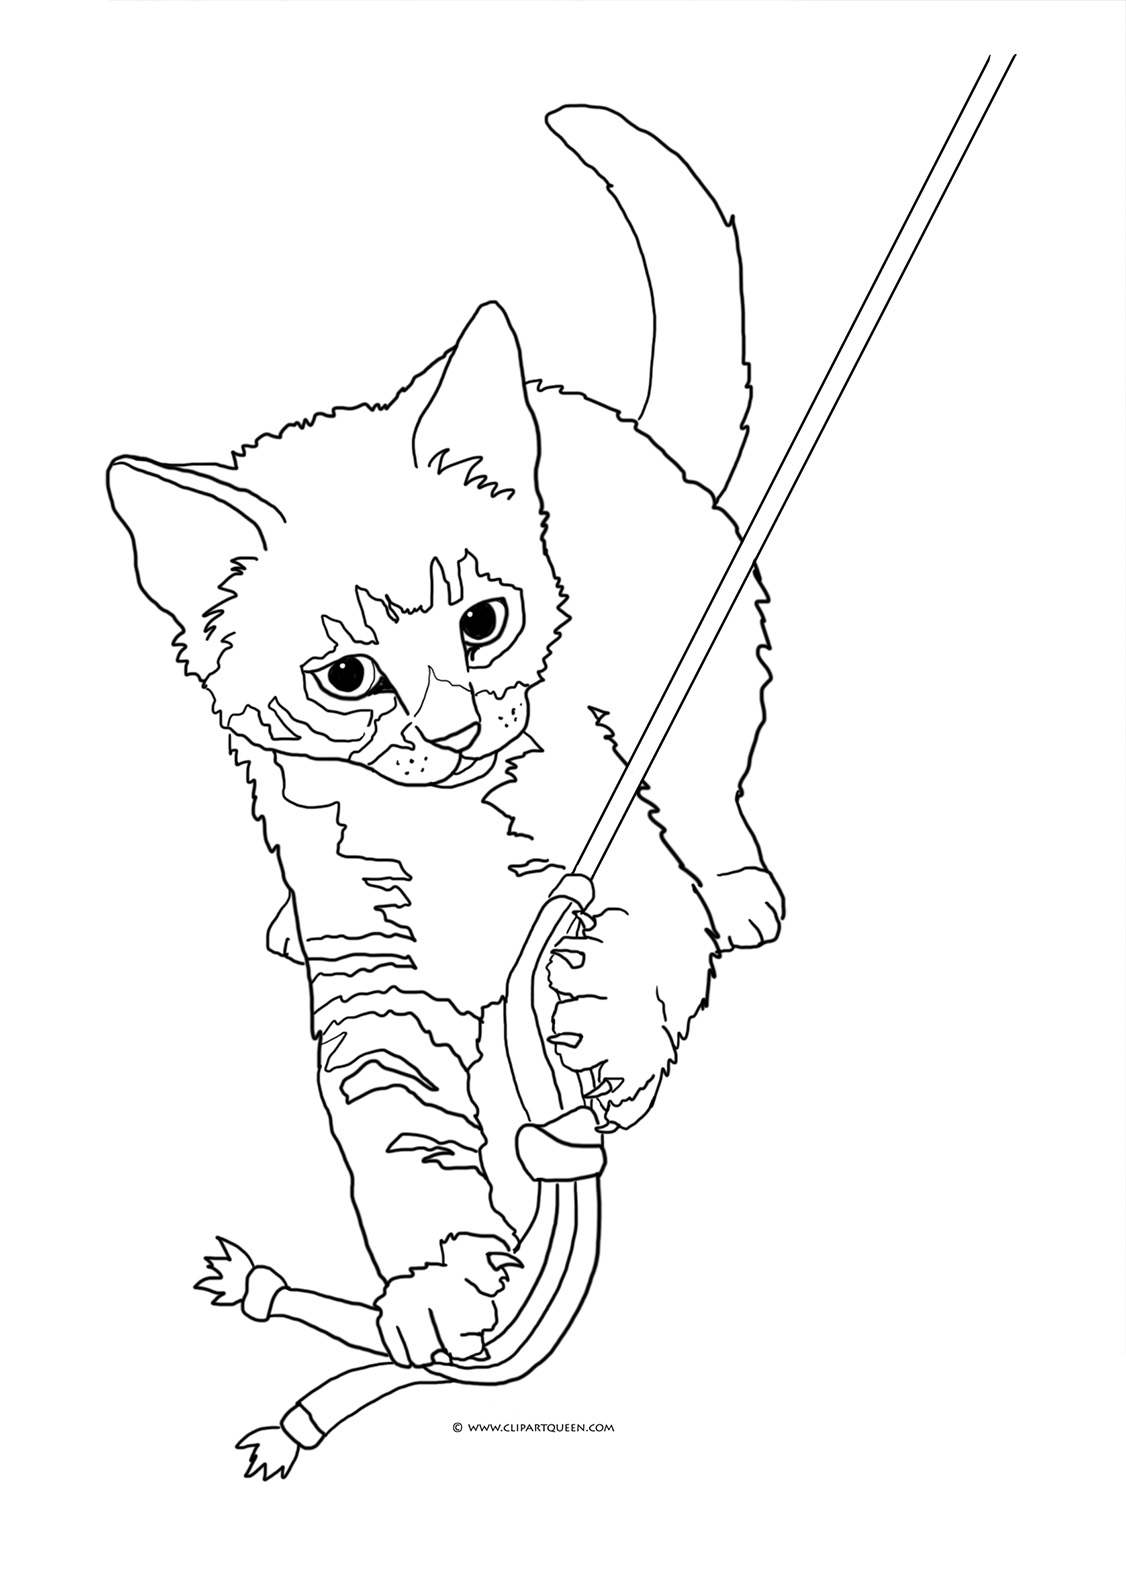 realistic house cat cat coloring pages realistic cat drawing at getdrawings free download cat realistic cat house pages coloring